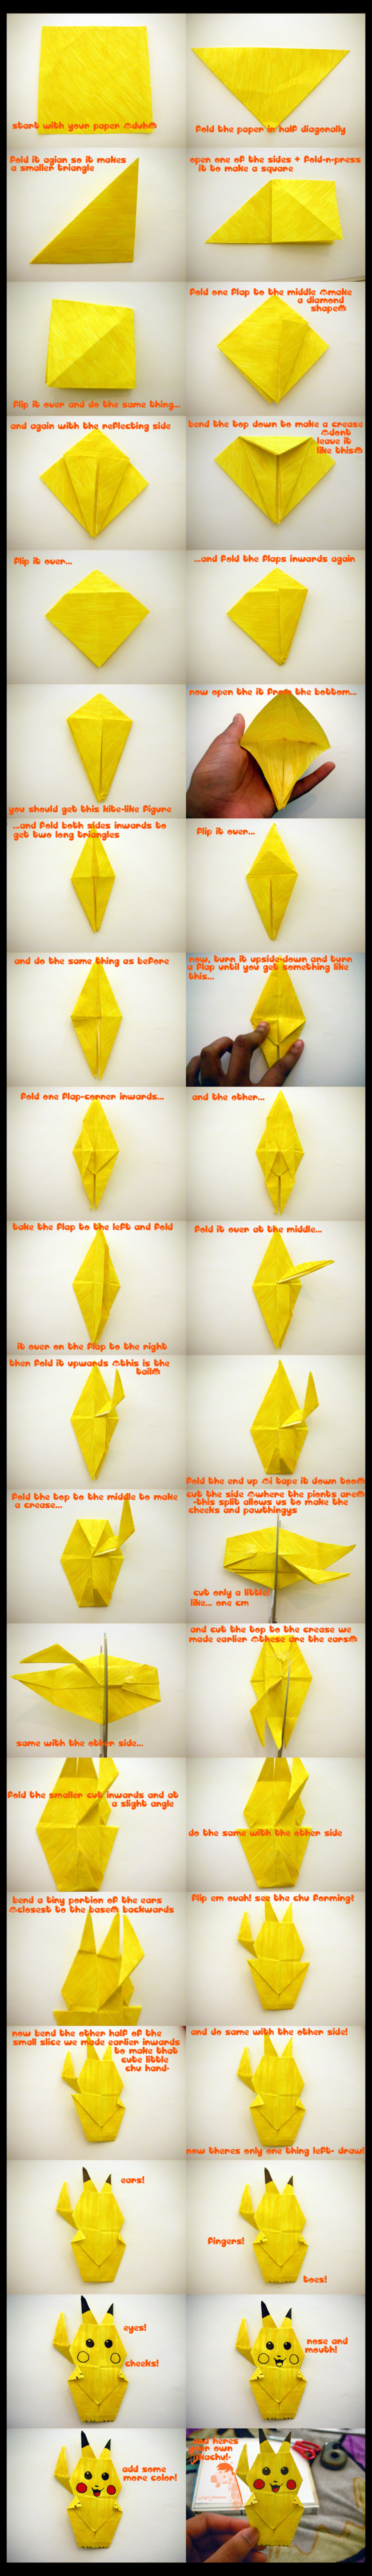 how to make an origami pikachu visually